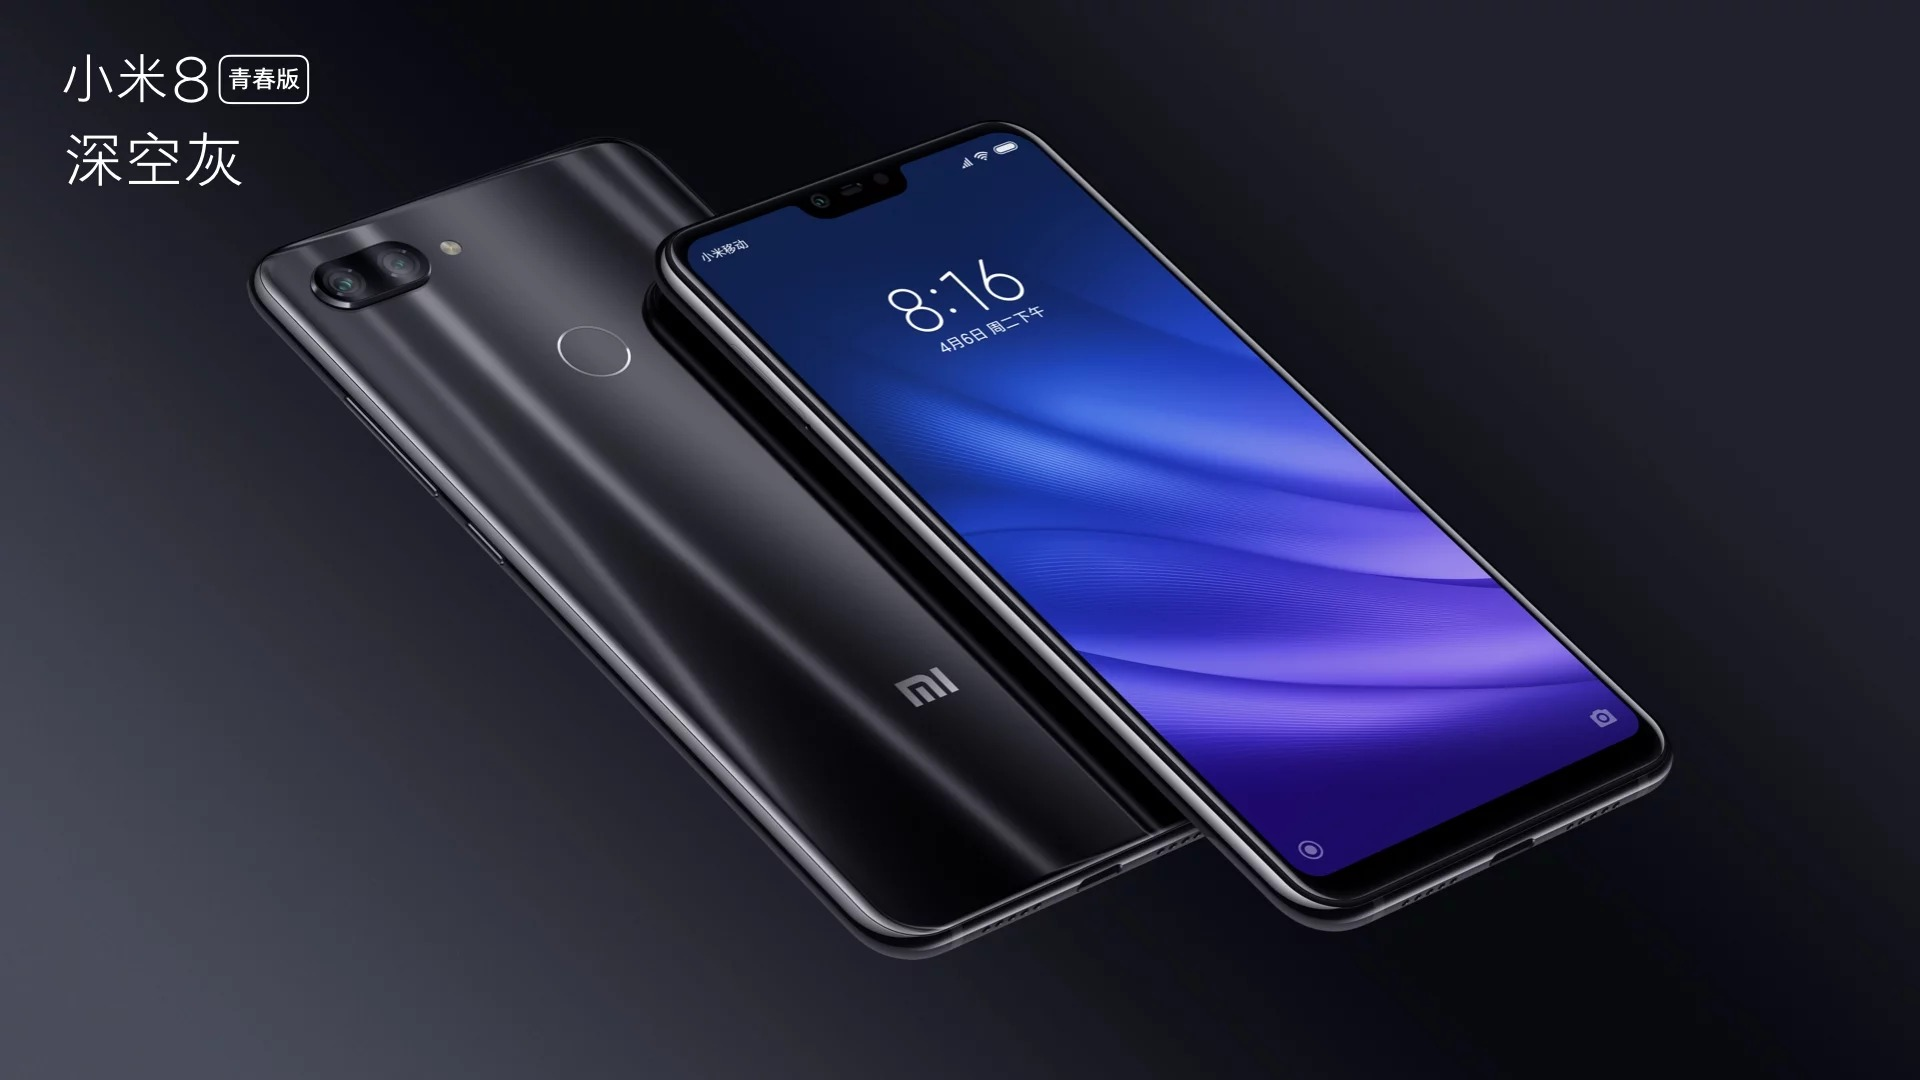 e462e3337 €179 with coupon for Xiaomi Mi8 Mi 8 Lite 6.26 inch 6GB RAM 128GB ROM 4G  Smartphone from BANGGOOD